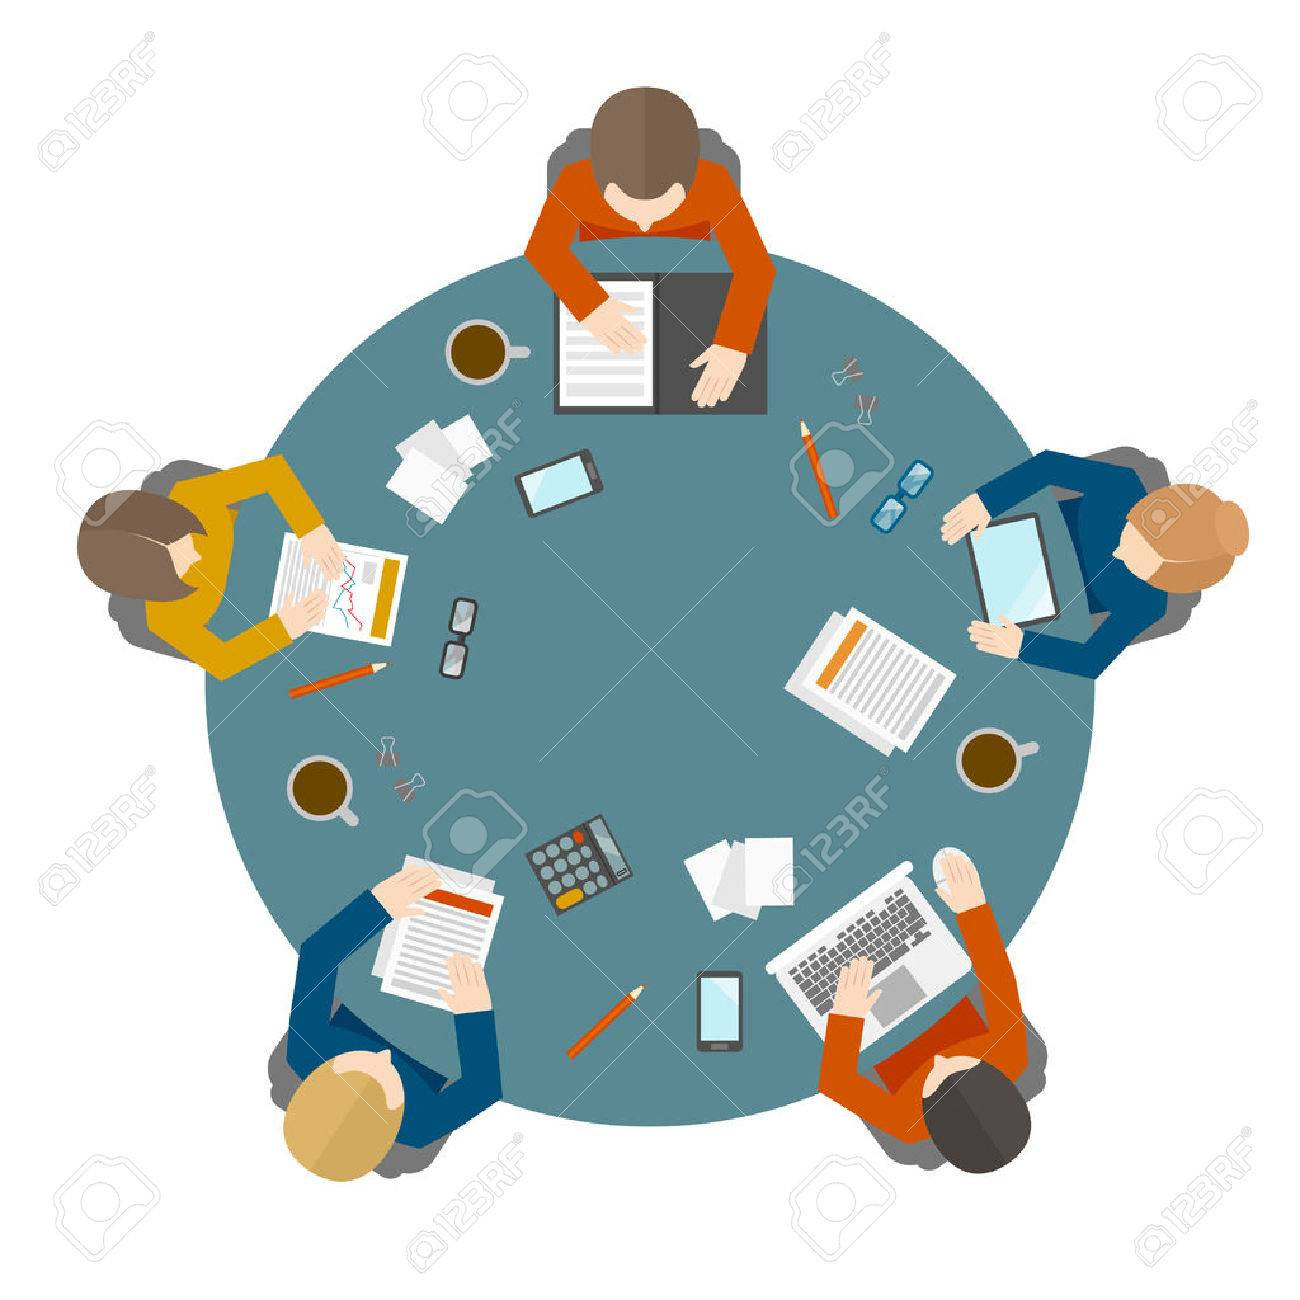 Flat style office workers business management meeting and brainstorming on the round table in top view